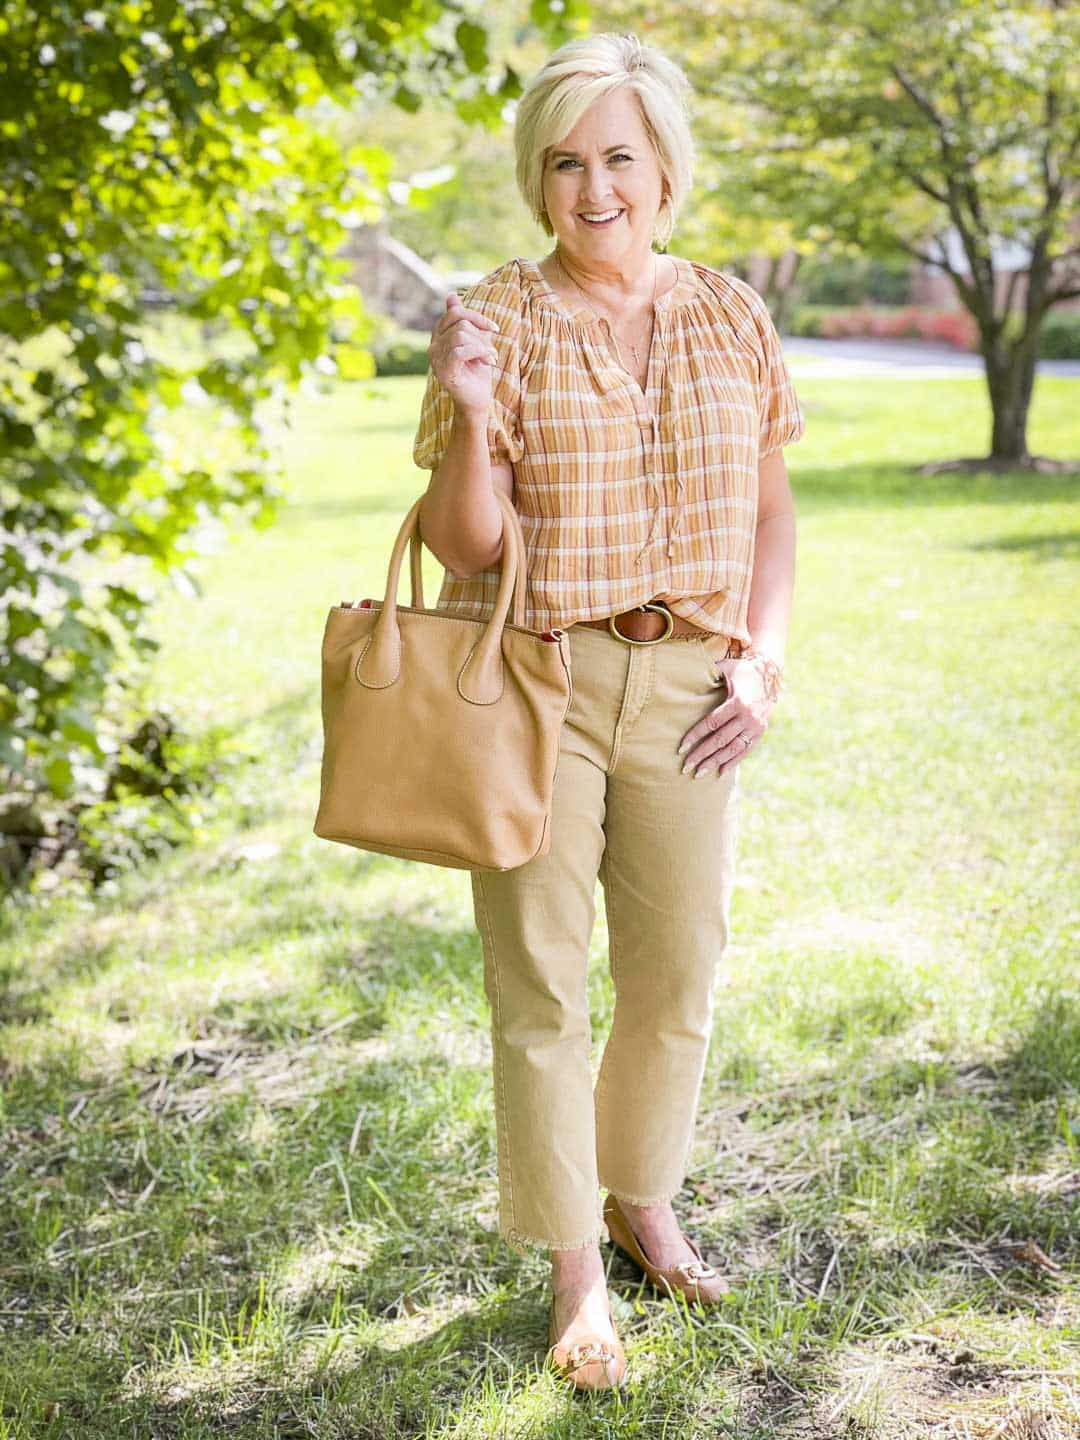 Over 40 Fashion Blogger, Tania Stephens, looks casual in her fall festive plaid top and cropped pecan colored jeans